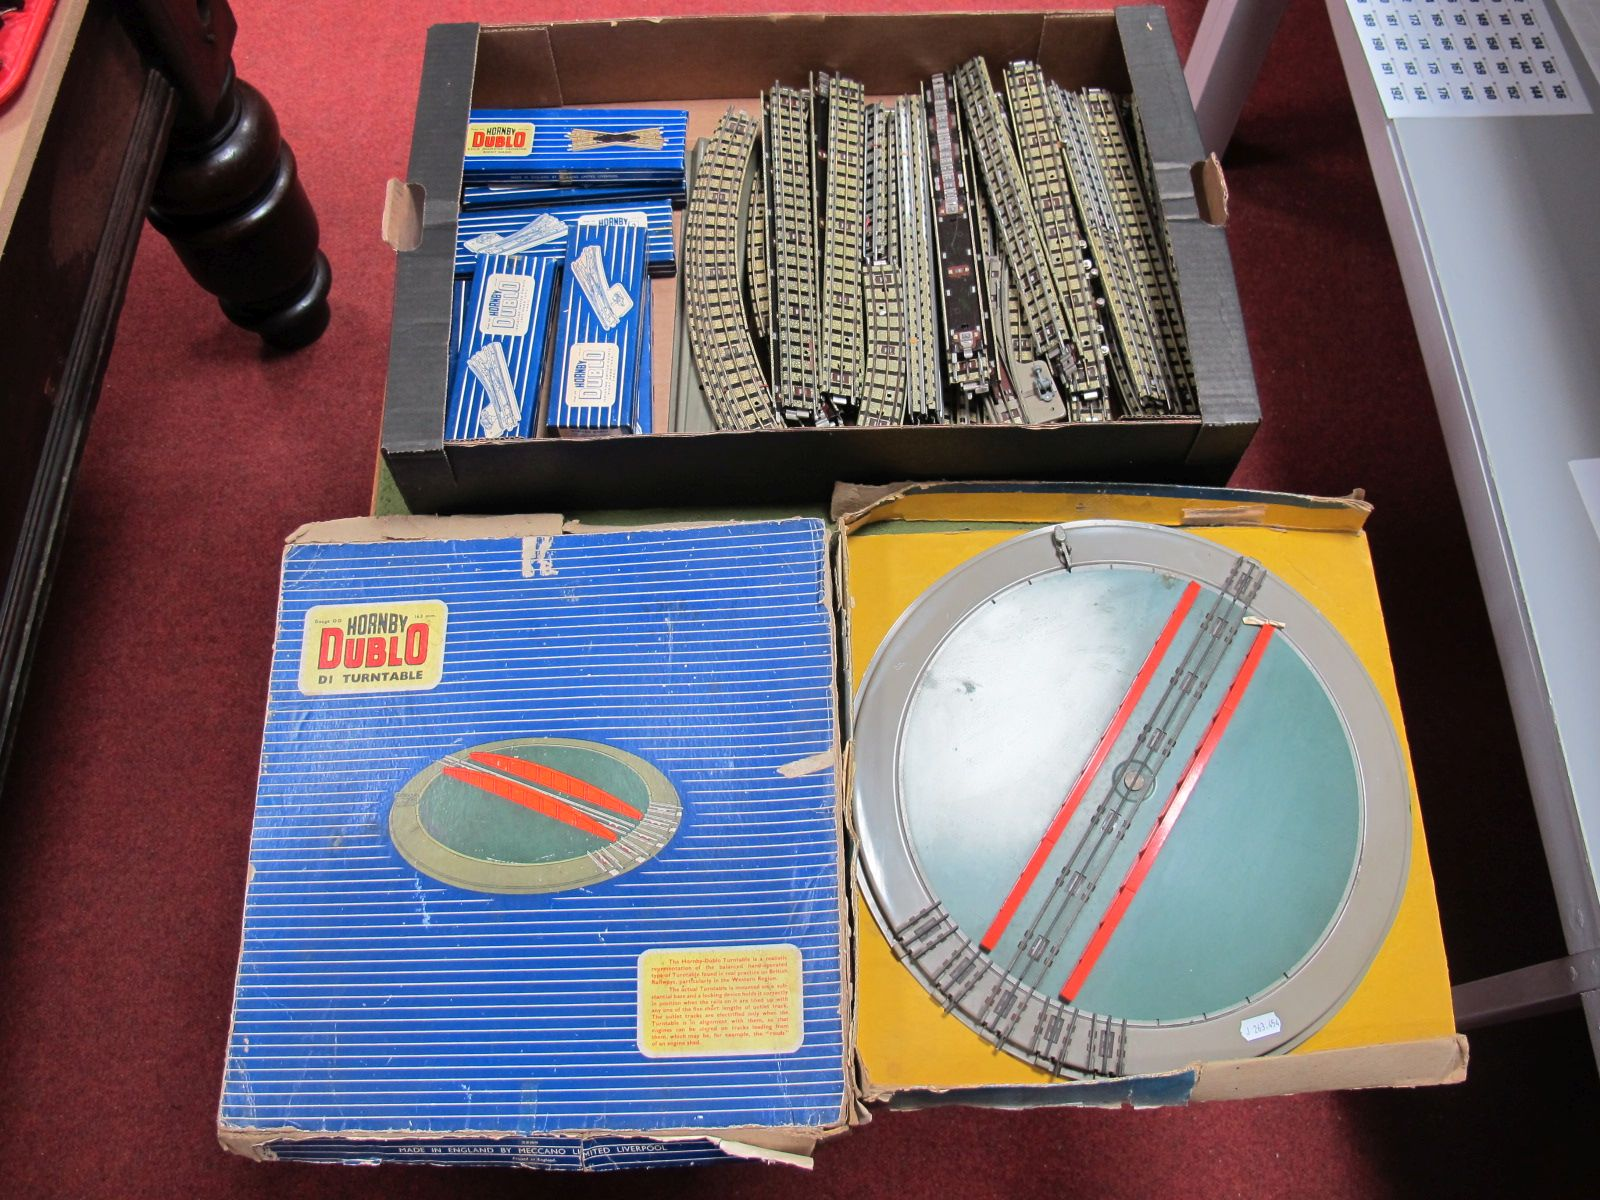 Lot 2 - A Small Quantity of Hornby Dublo Three Rail Track, including straights, curves, isolating switch